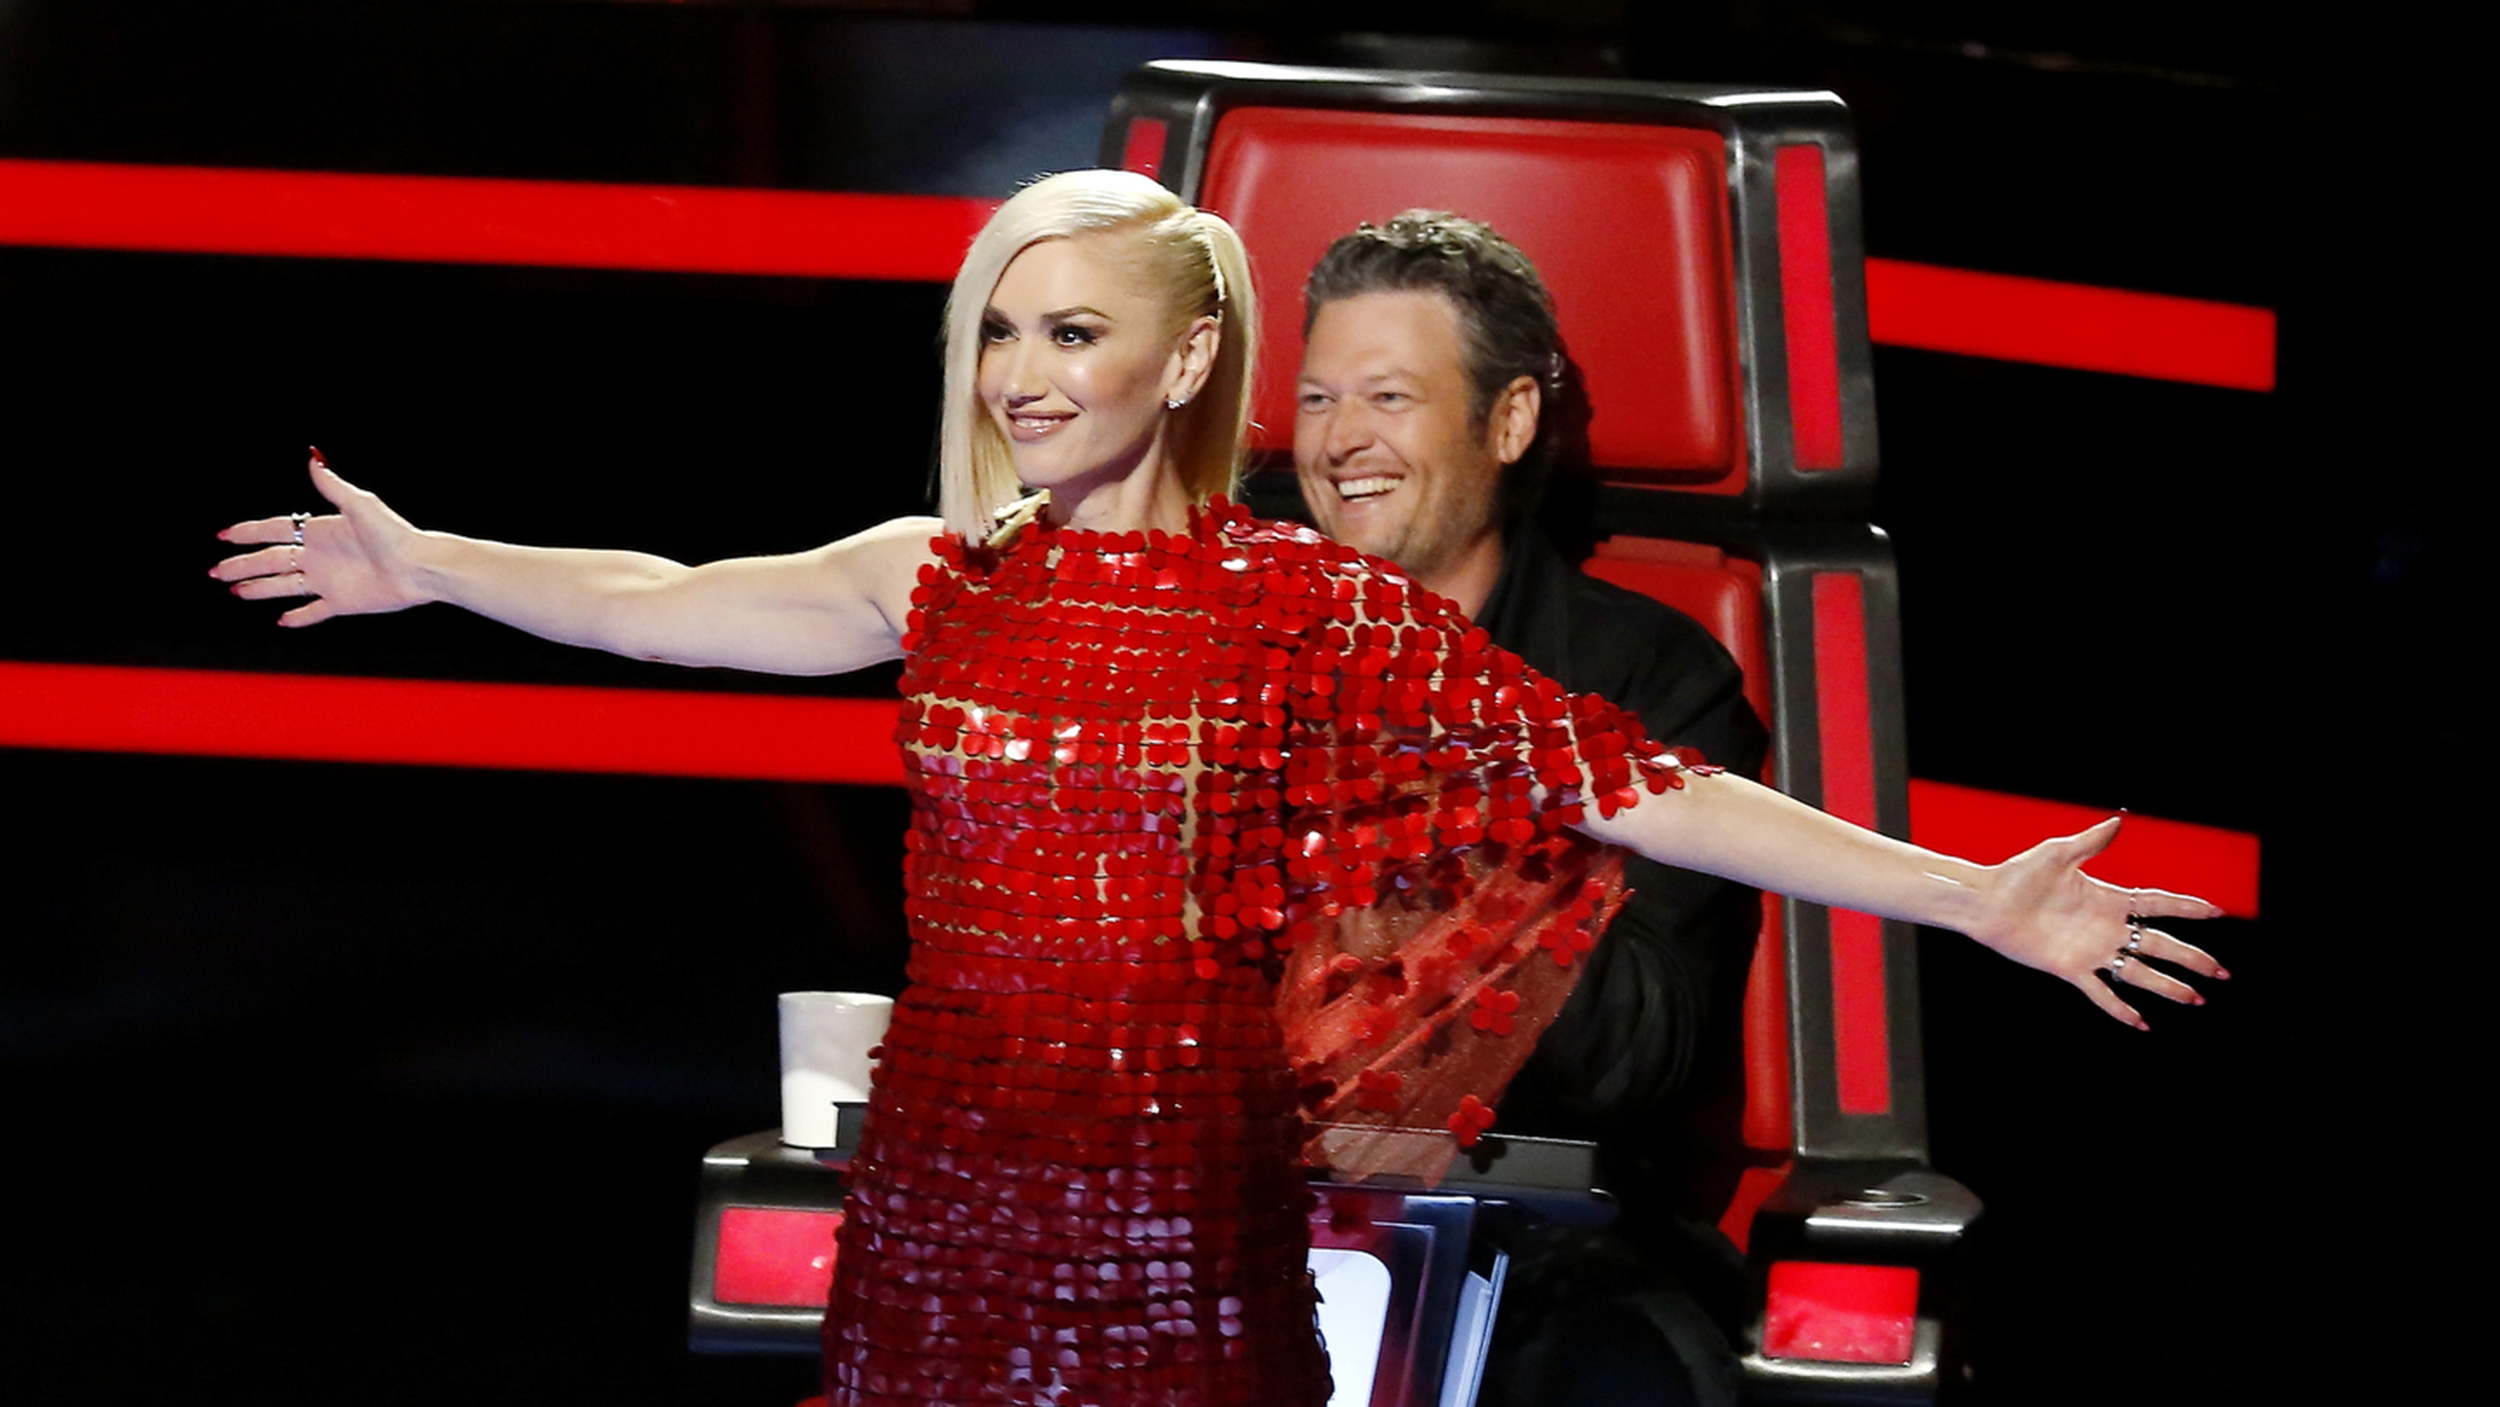 Gwen Stefani Returning To The Voice As Adviser For Blake